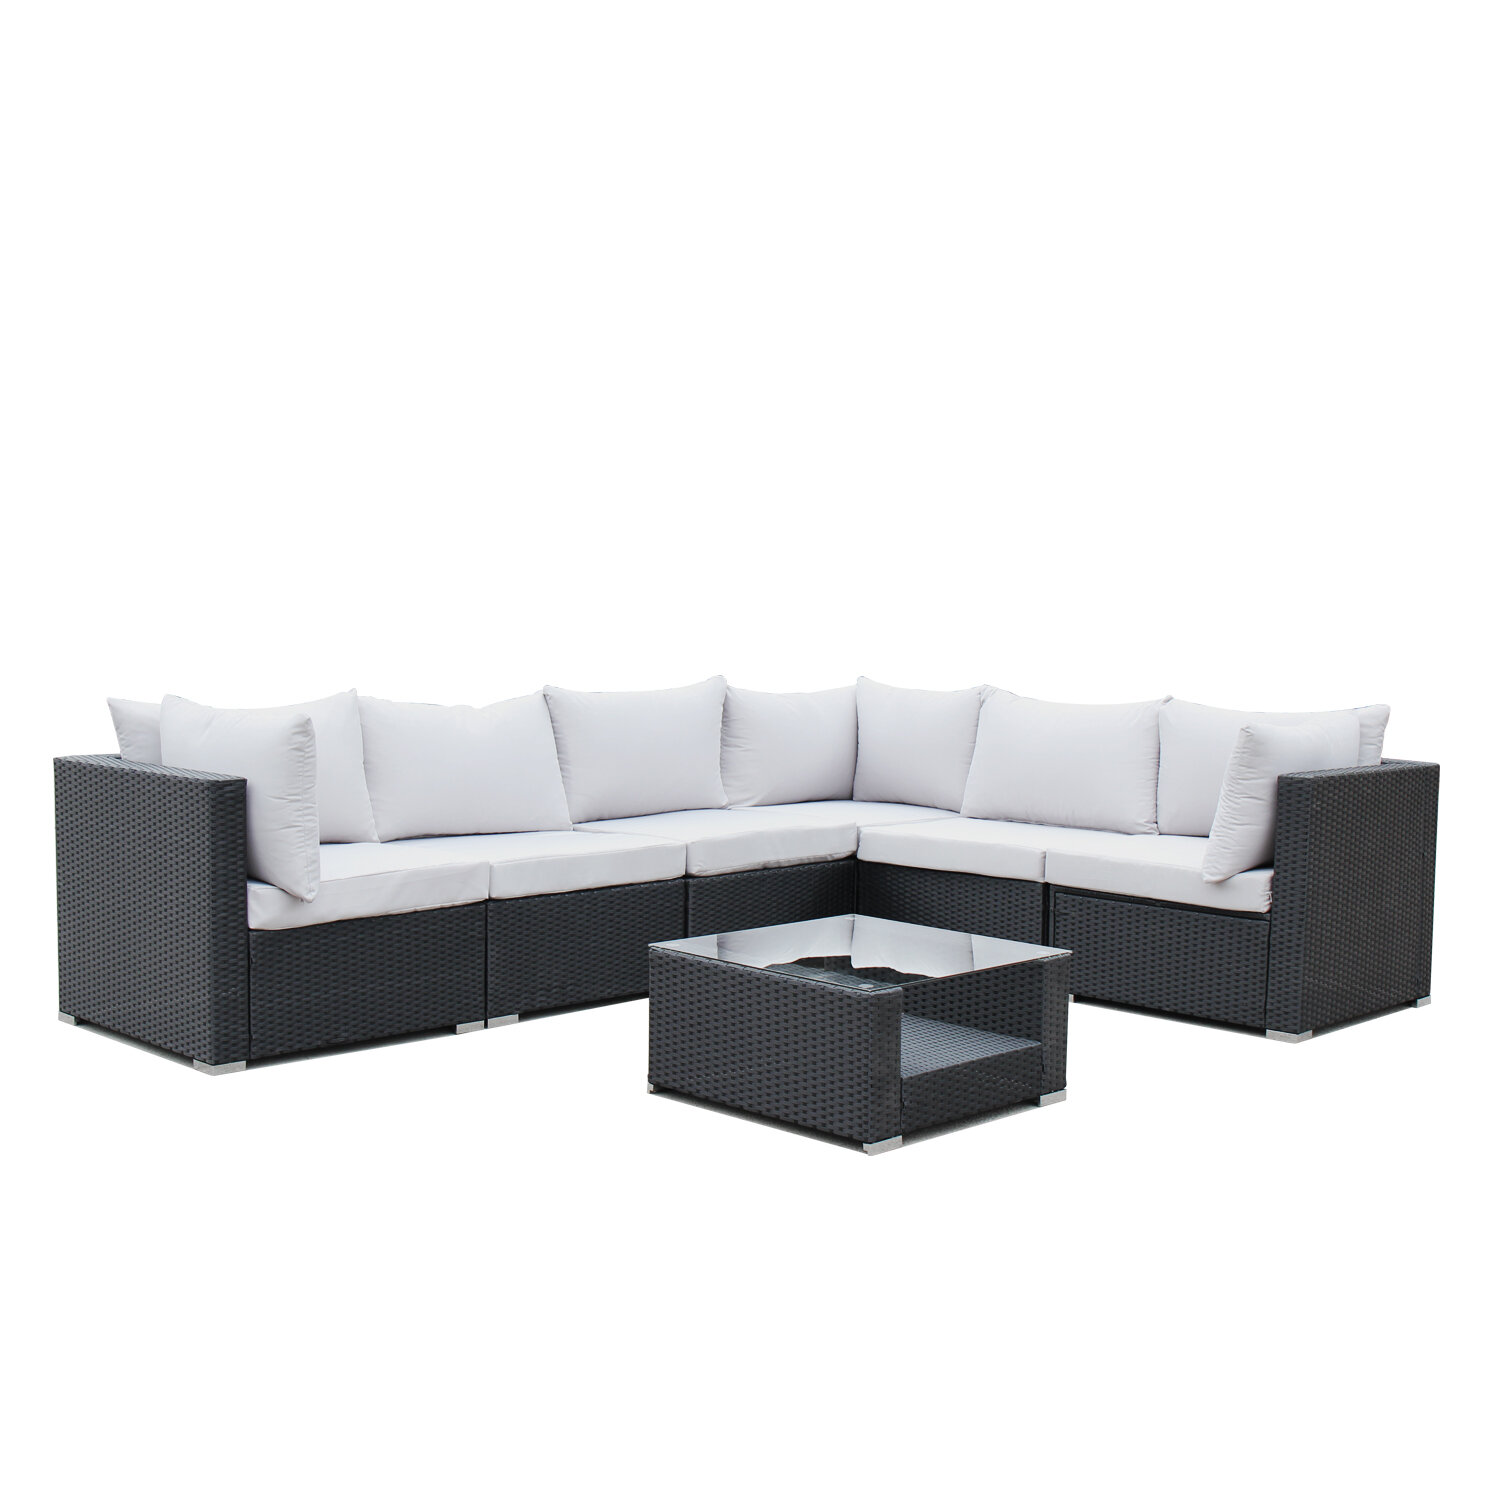 Lecroy 7 Piece Sectional Set with Cushions & Reviews | Joss ...